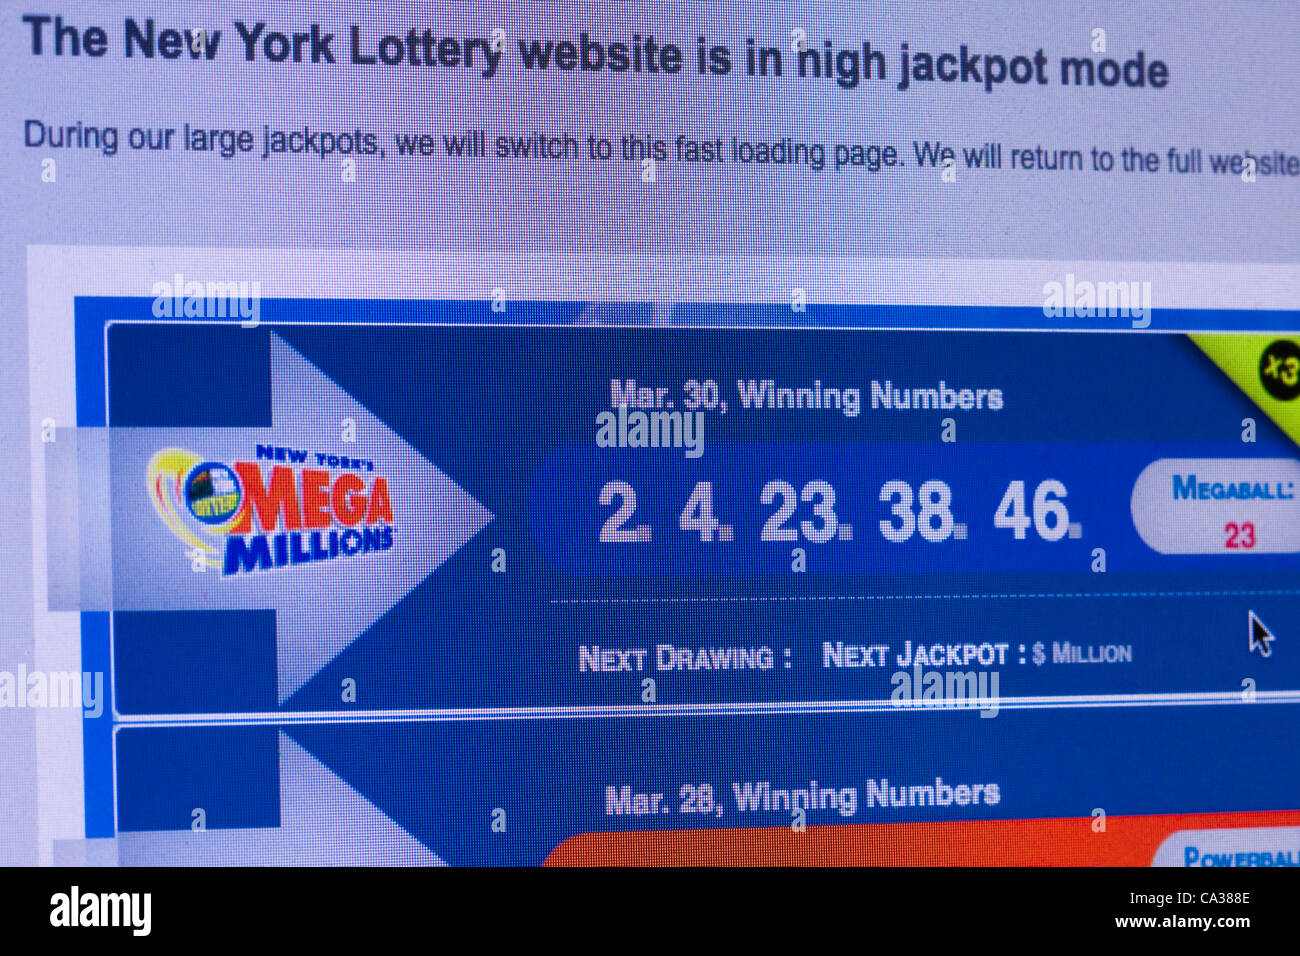 Mega Millions Winning Lottery Numbers For March 30 2012 The 640 Stock Photo Alamy